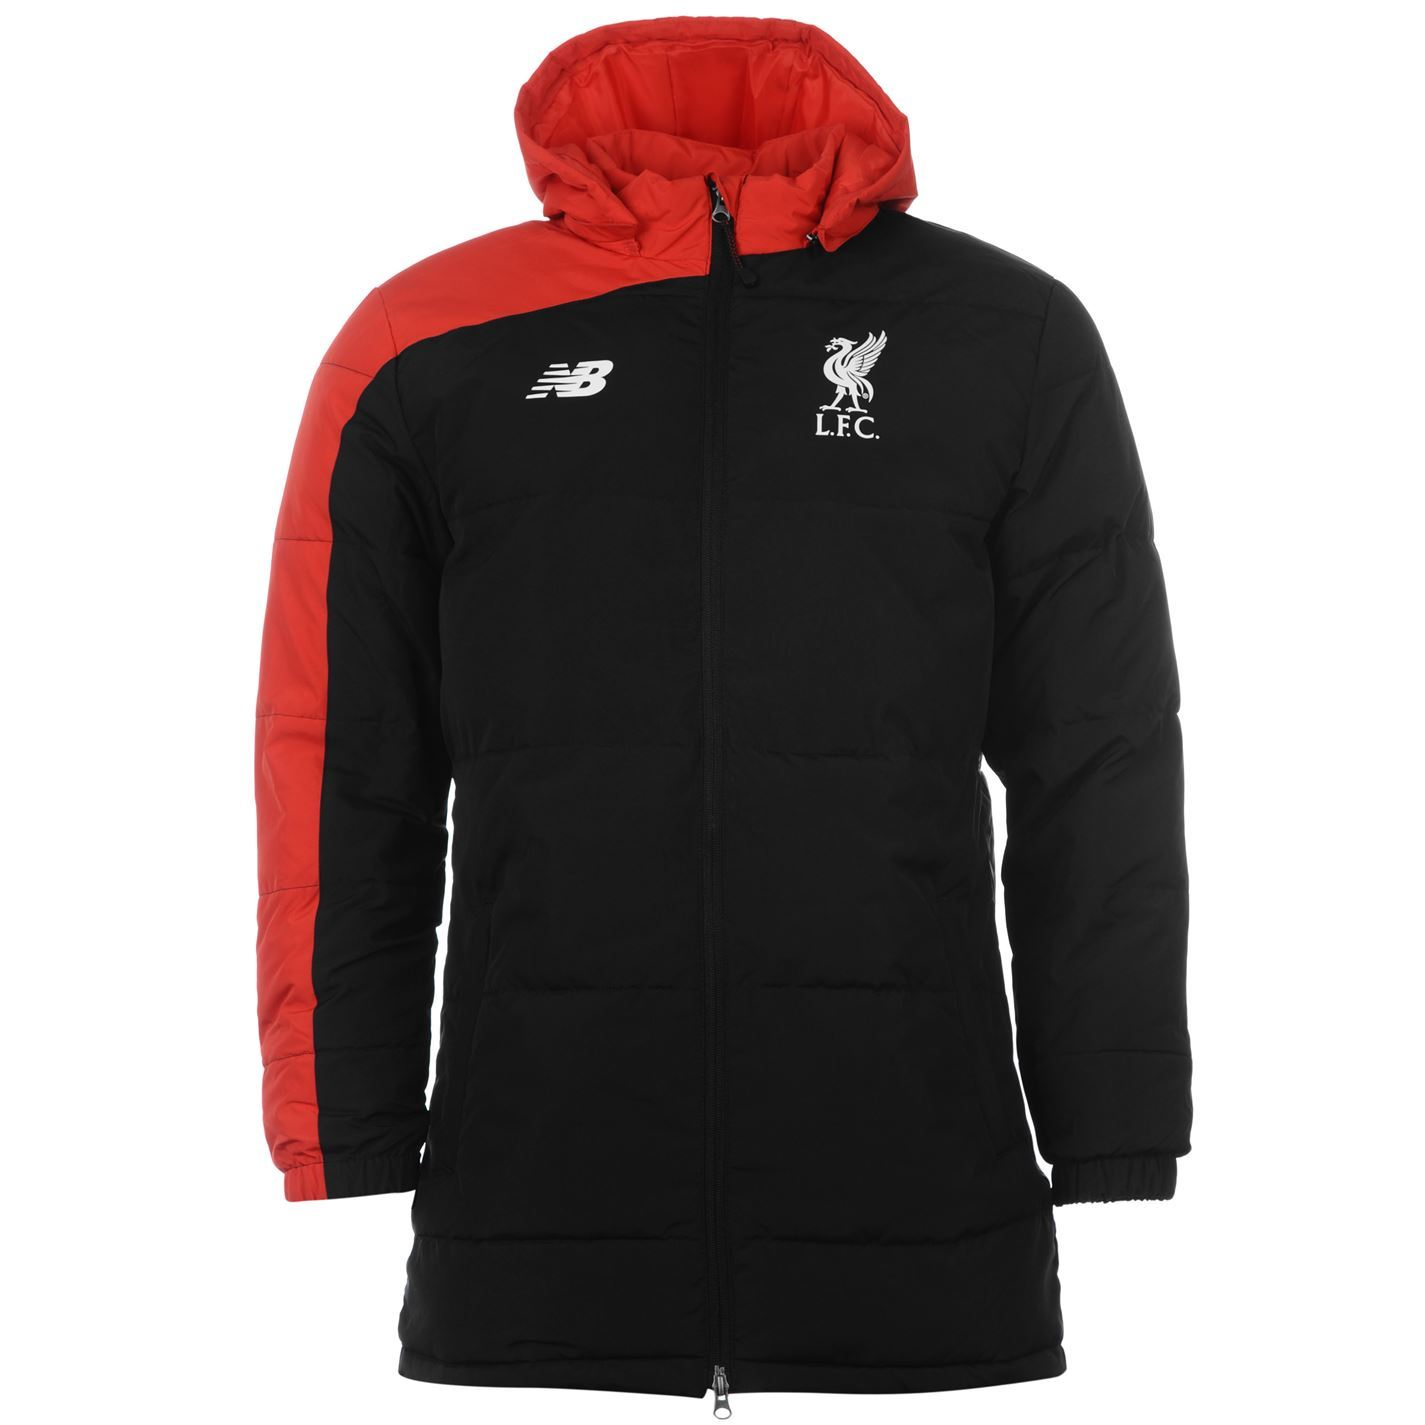 Details About New Balance Liverpool Fc Stadium Jacket Mens Black Epl